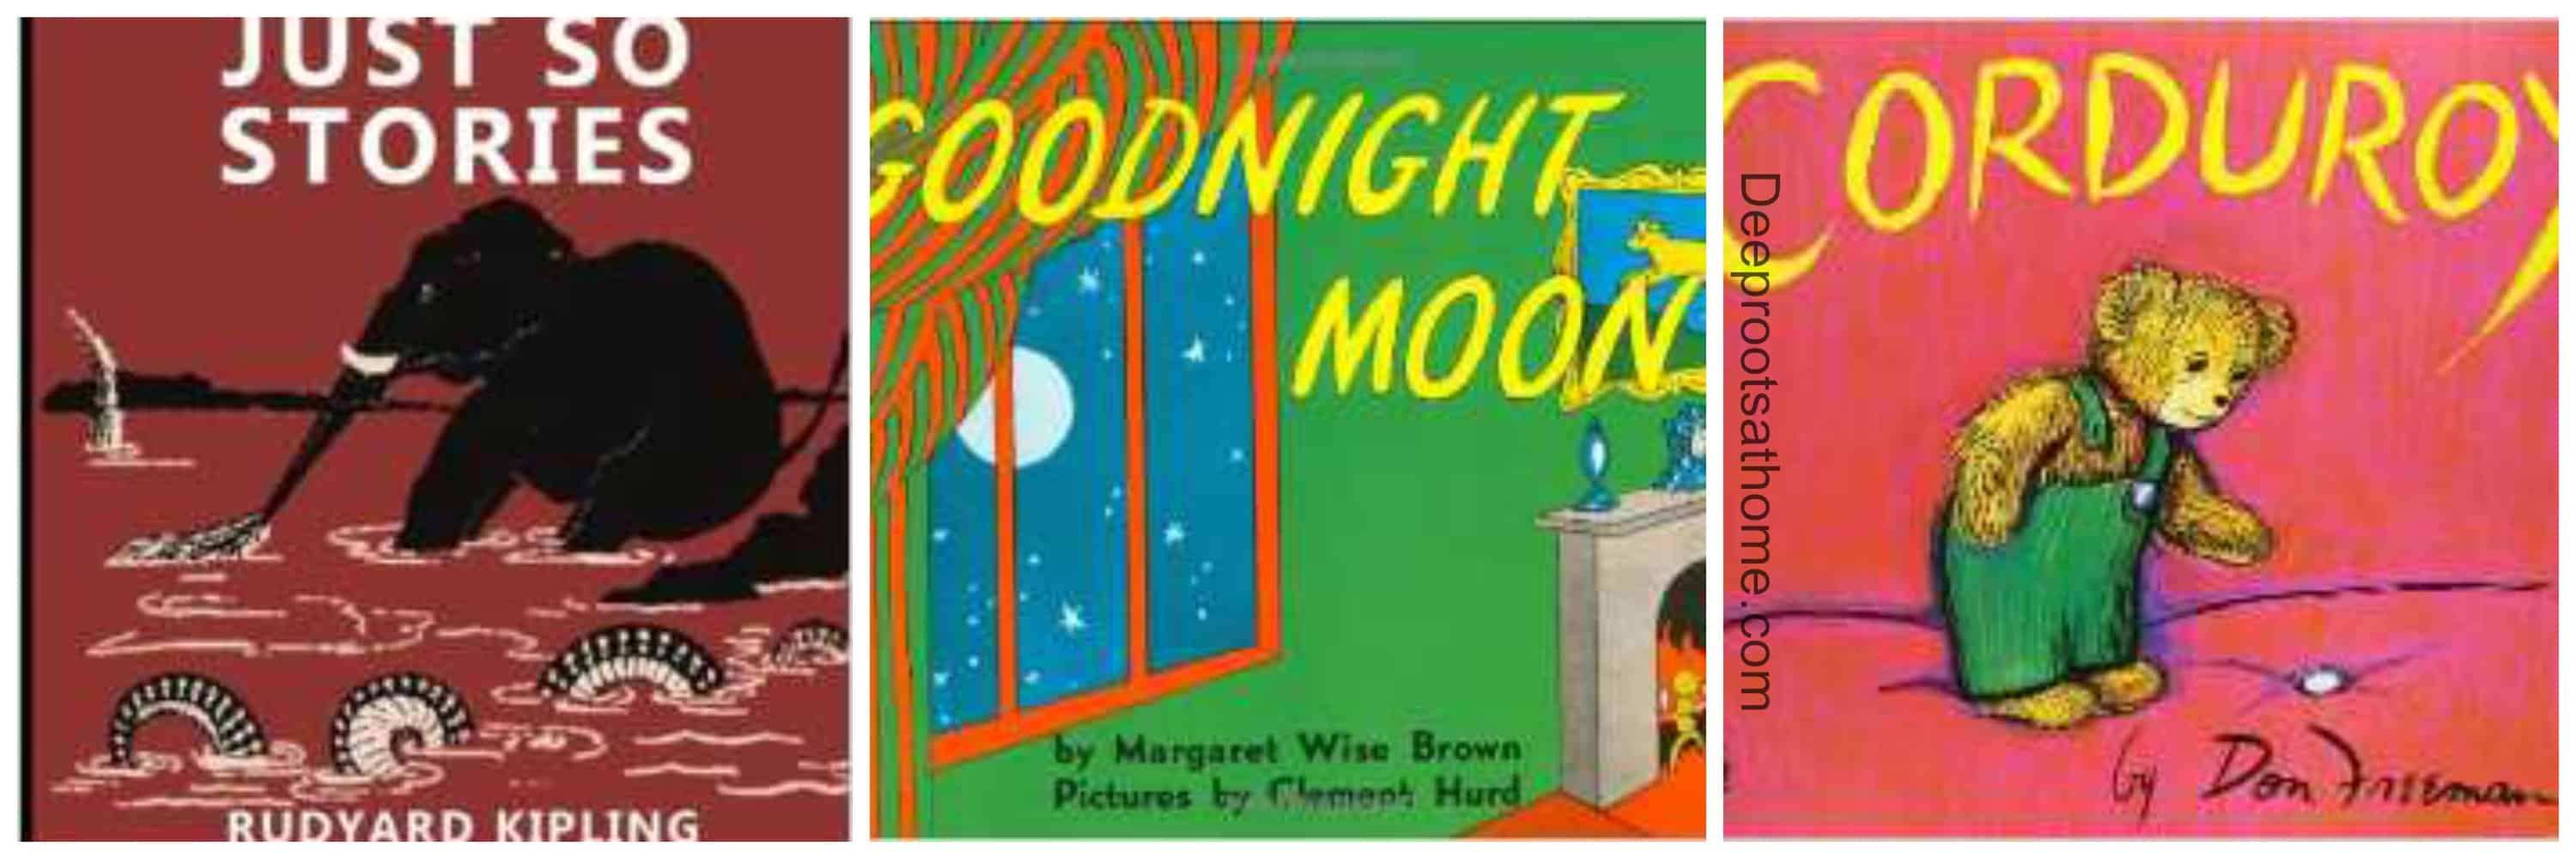 25 Beloved, Time-Tested Read Alouds For Young Children. Three books: Just So Stories by Rudyard Kipling, Goodnight Moon by Margaret wise Brown and Corduroy.